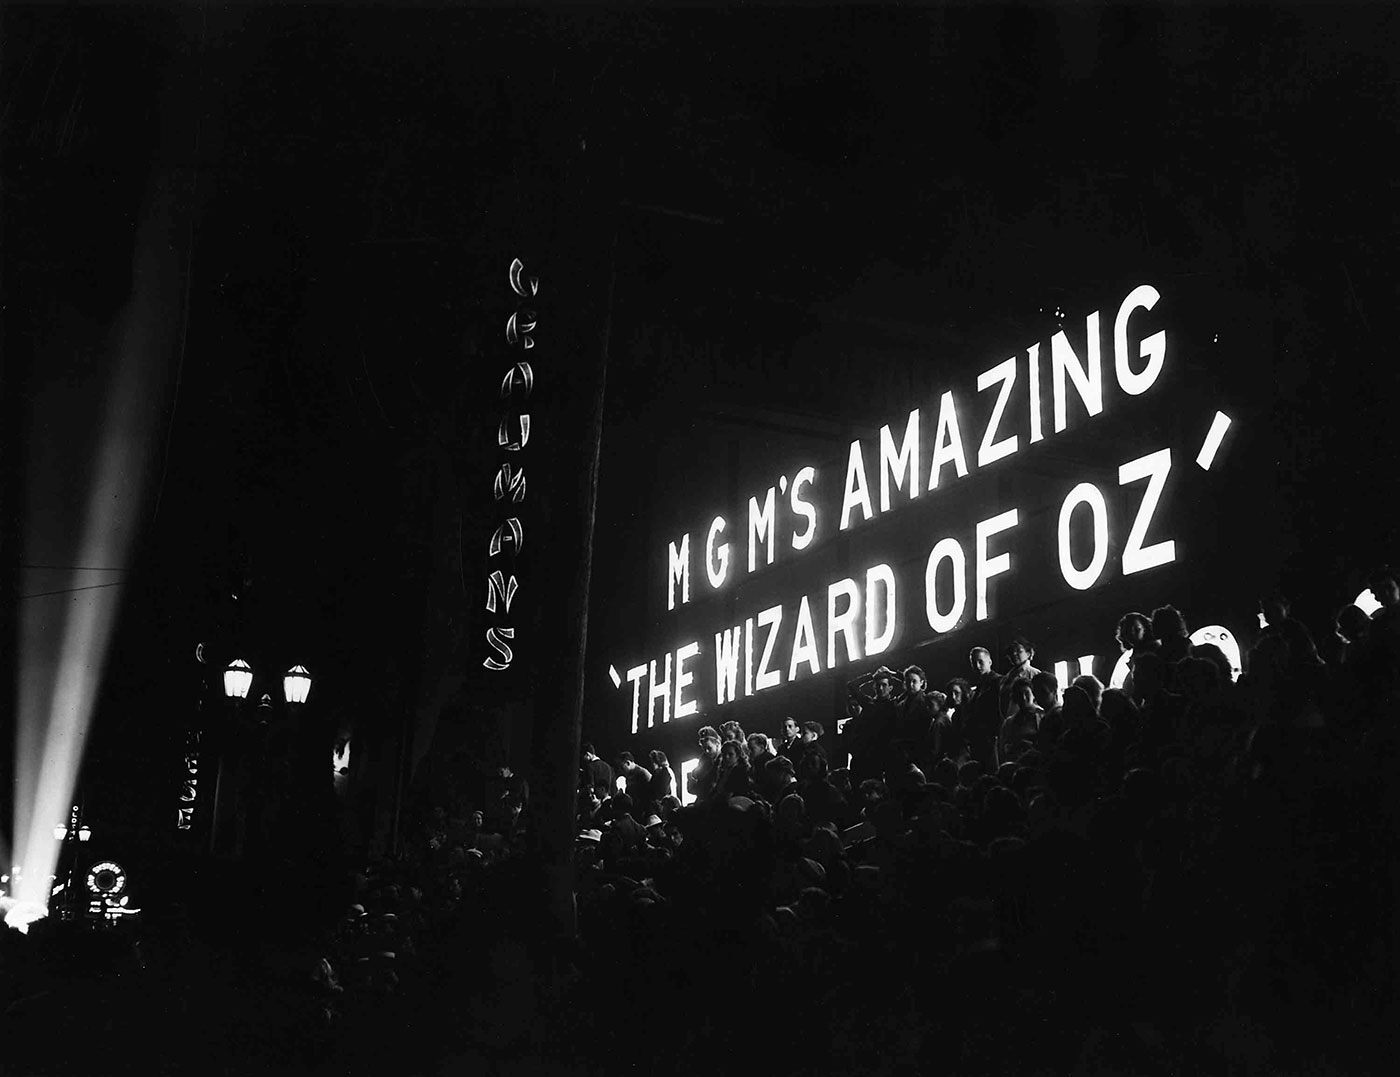 """The Wizard of Oz"" - Premiere"